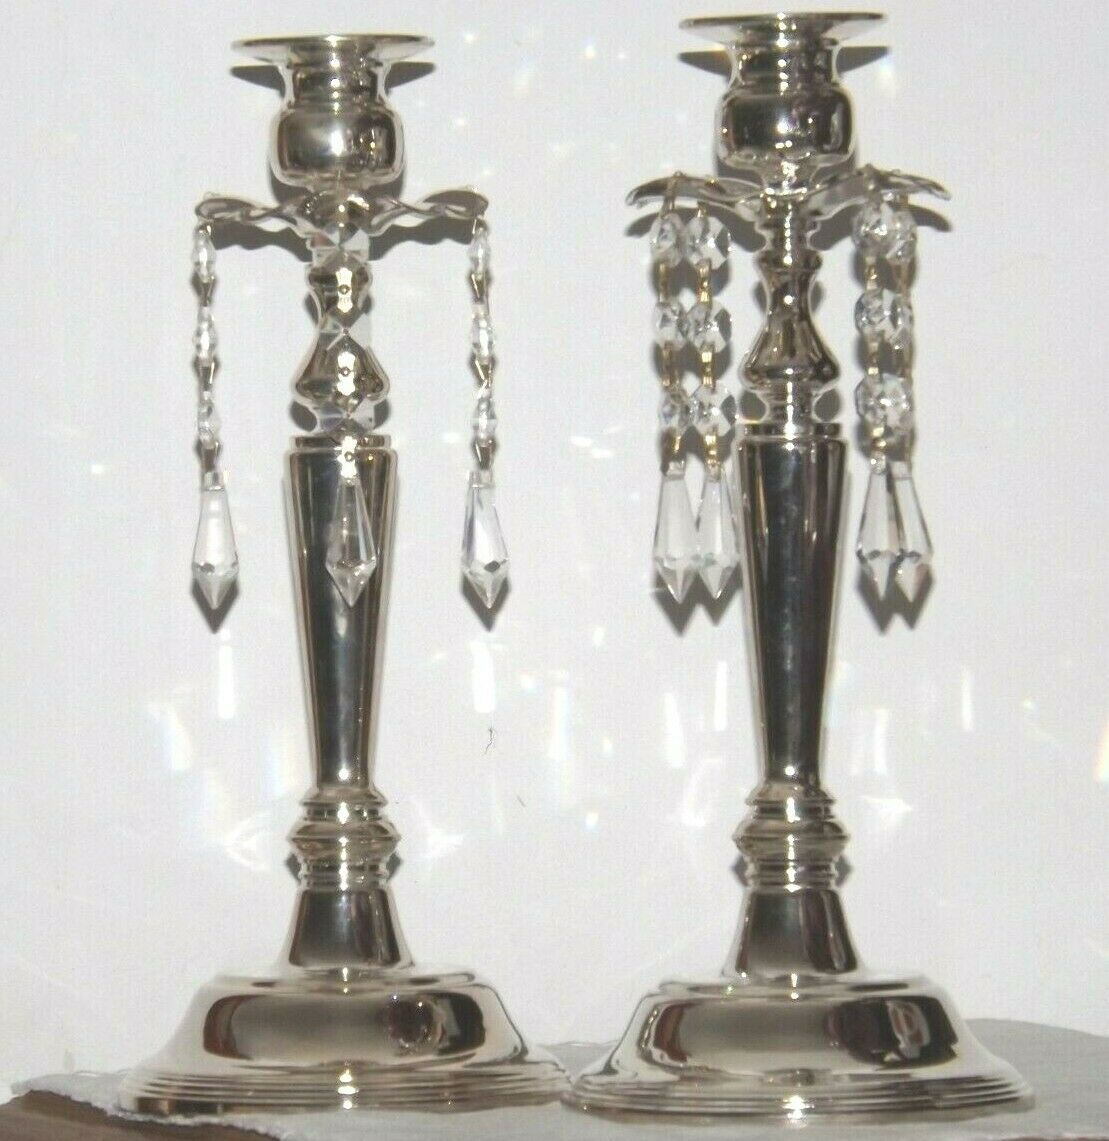 Milkasa Candle Stick Holders in blue box  AA19-1582 Vintage Pair